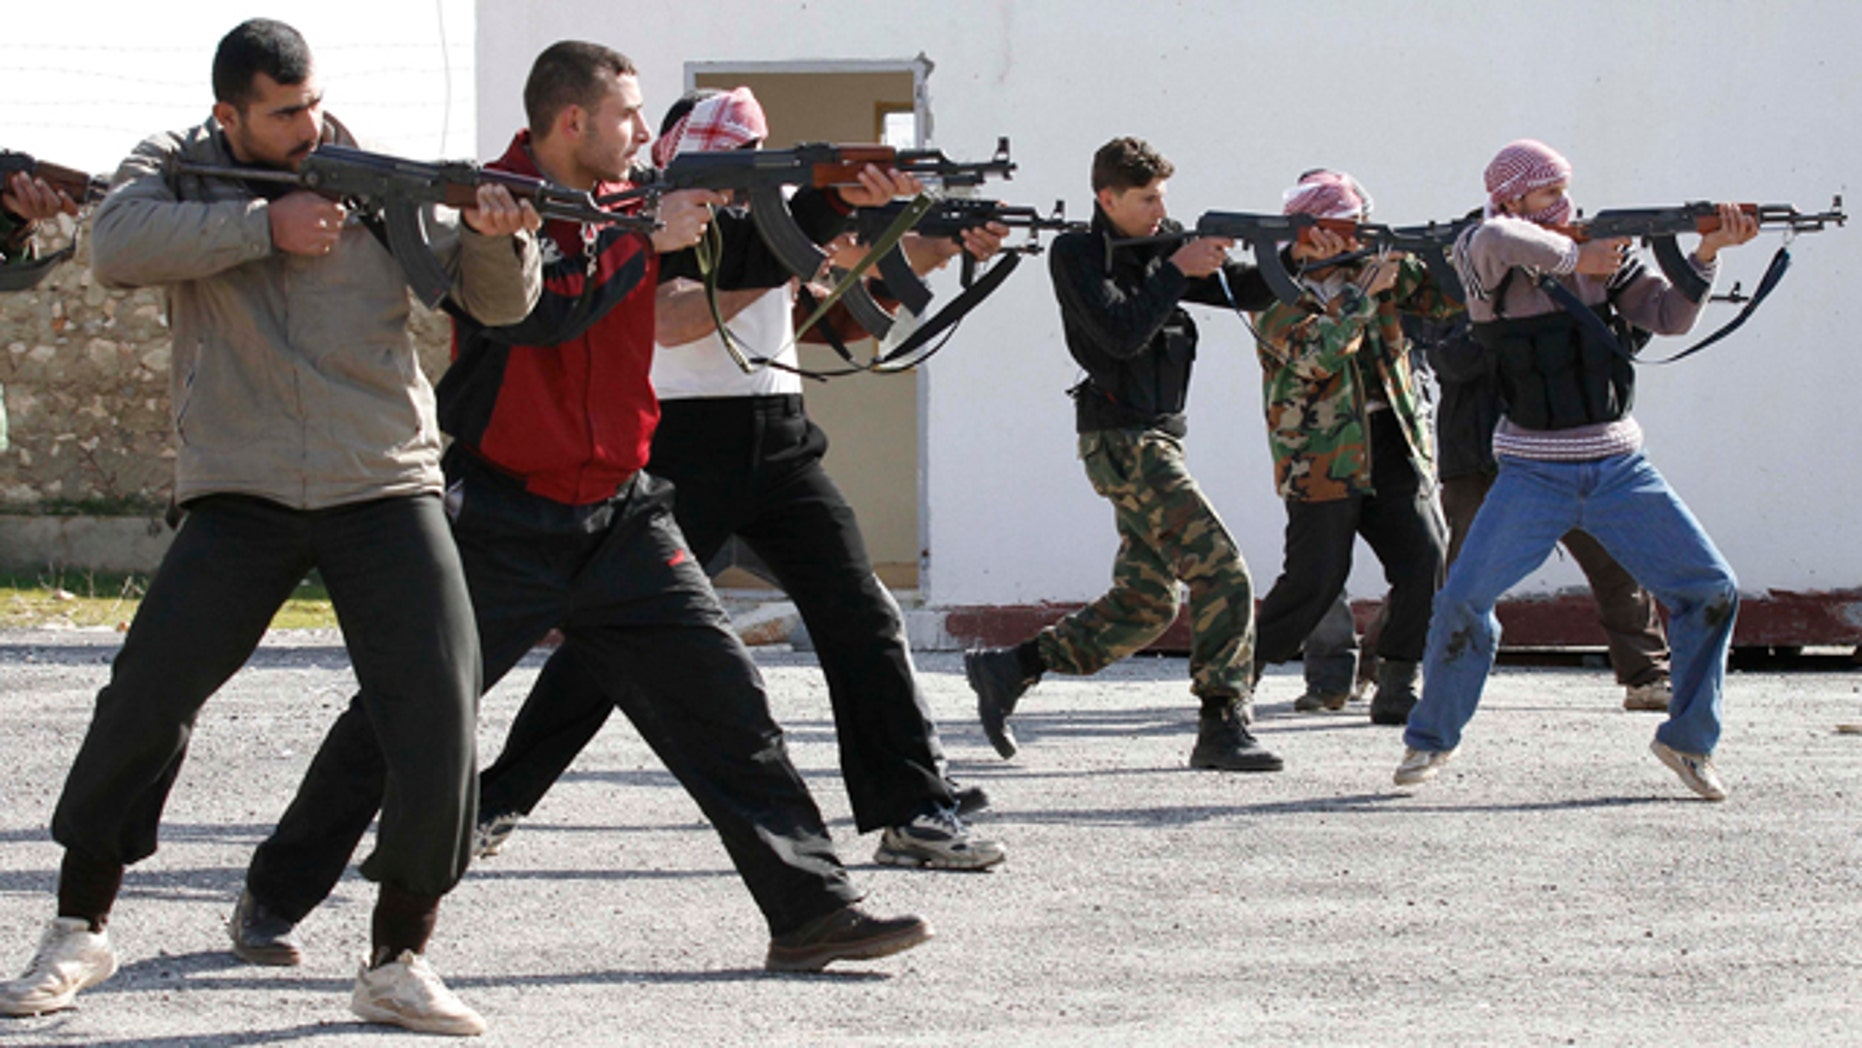 Feb. 14, 2012: FILE- In this file photo, Syrian rebels aim during a weapons training exercise outside Idlib, Syria.